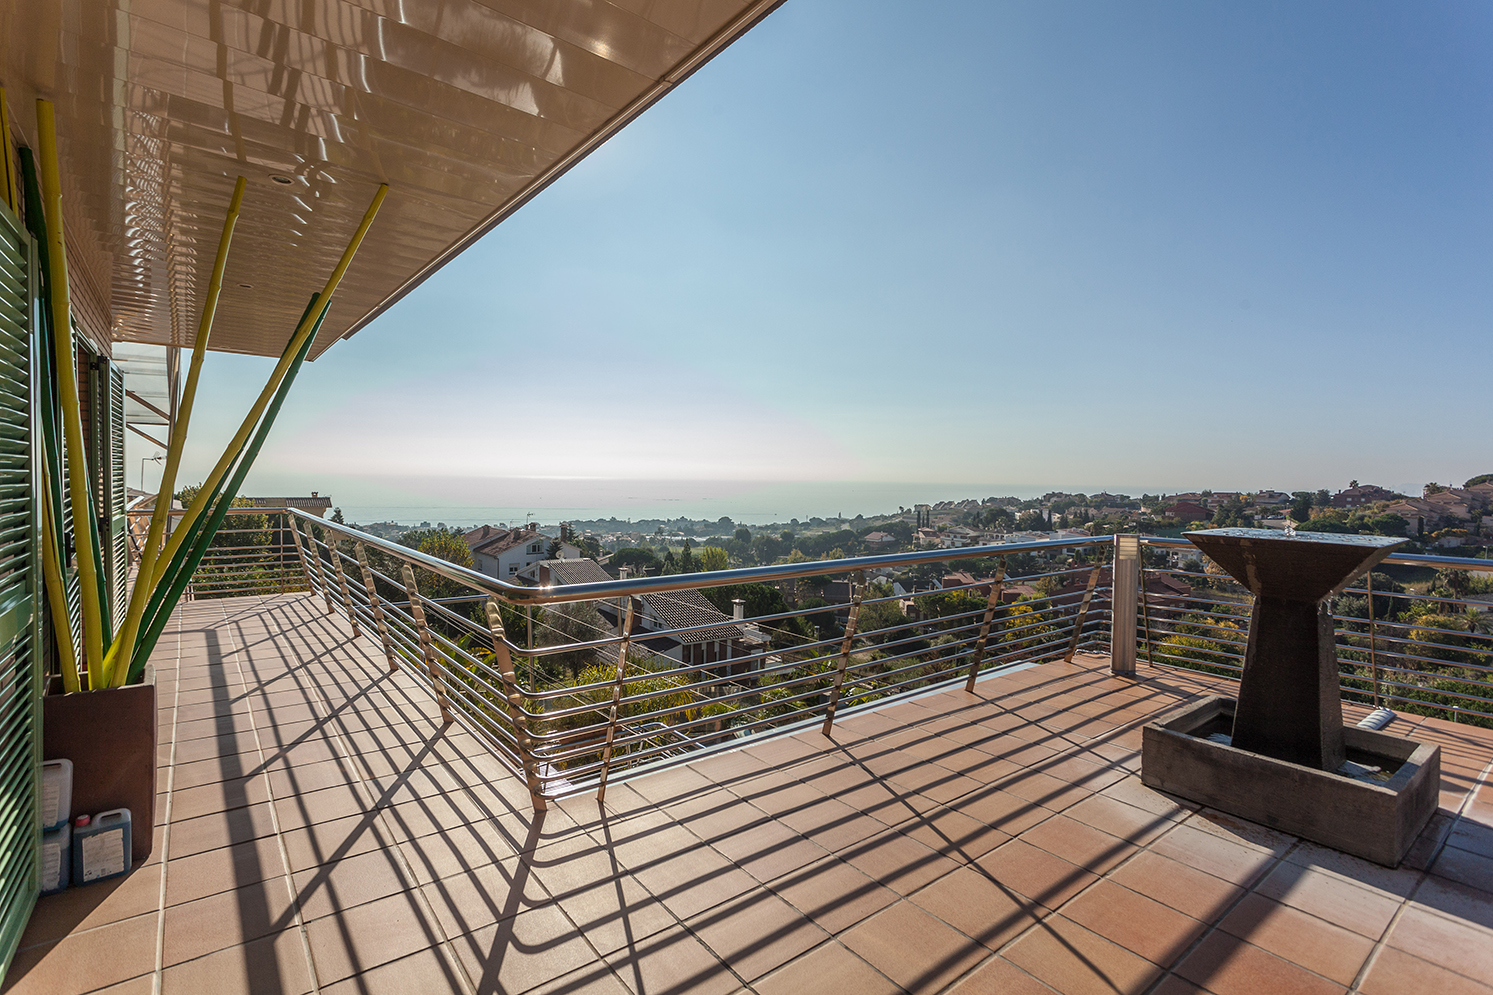 Single Family Home for Sale at Spacious house in excellent condition with sea views Teia, Barcelona, 08329 Spain